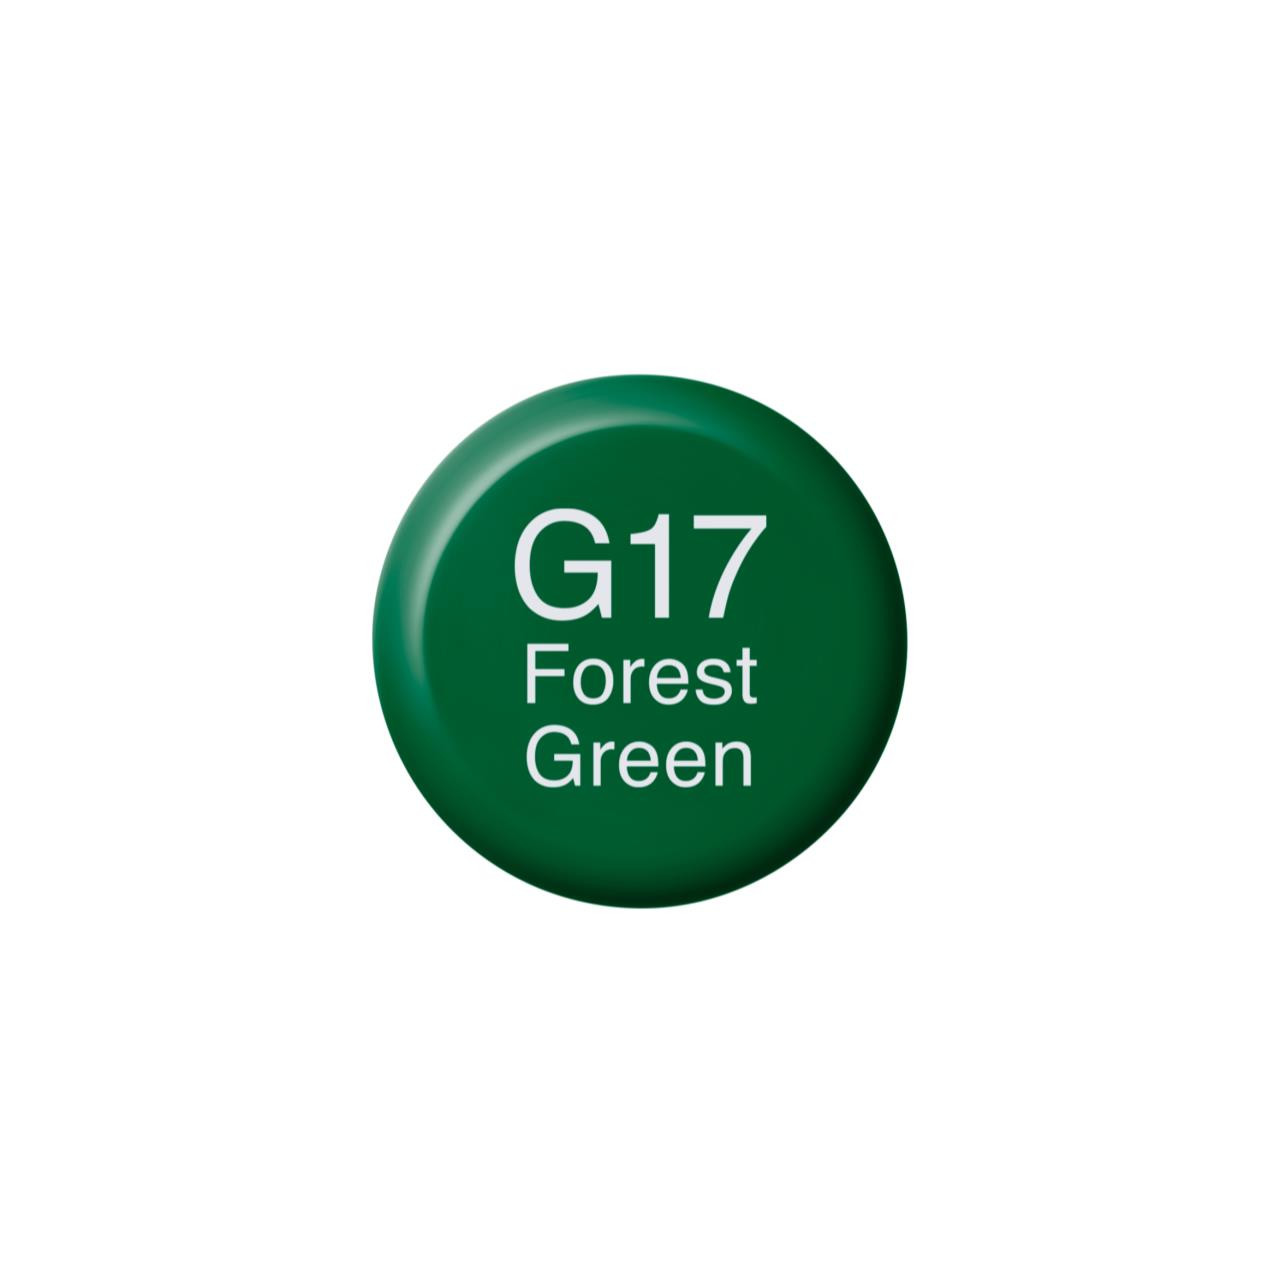 G17 Forest Green, Copic Ink - 4511338057223